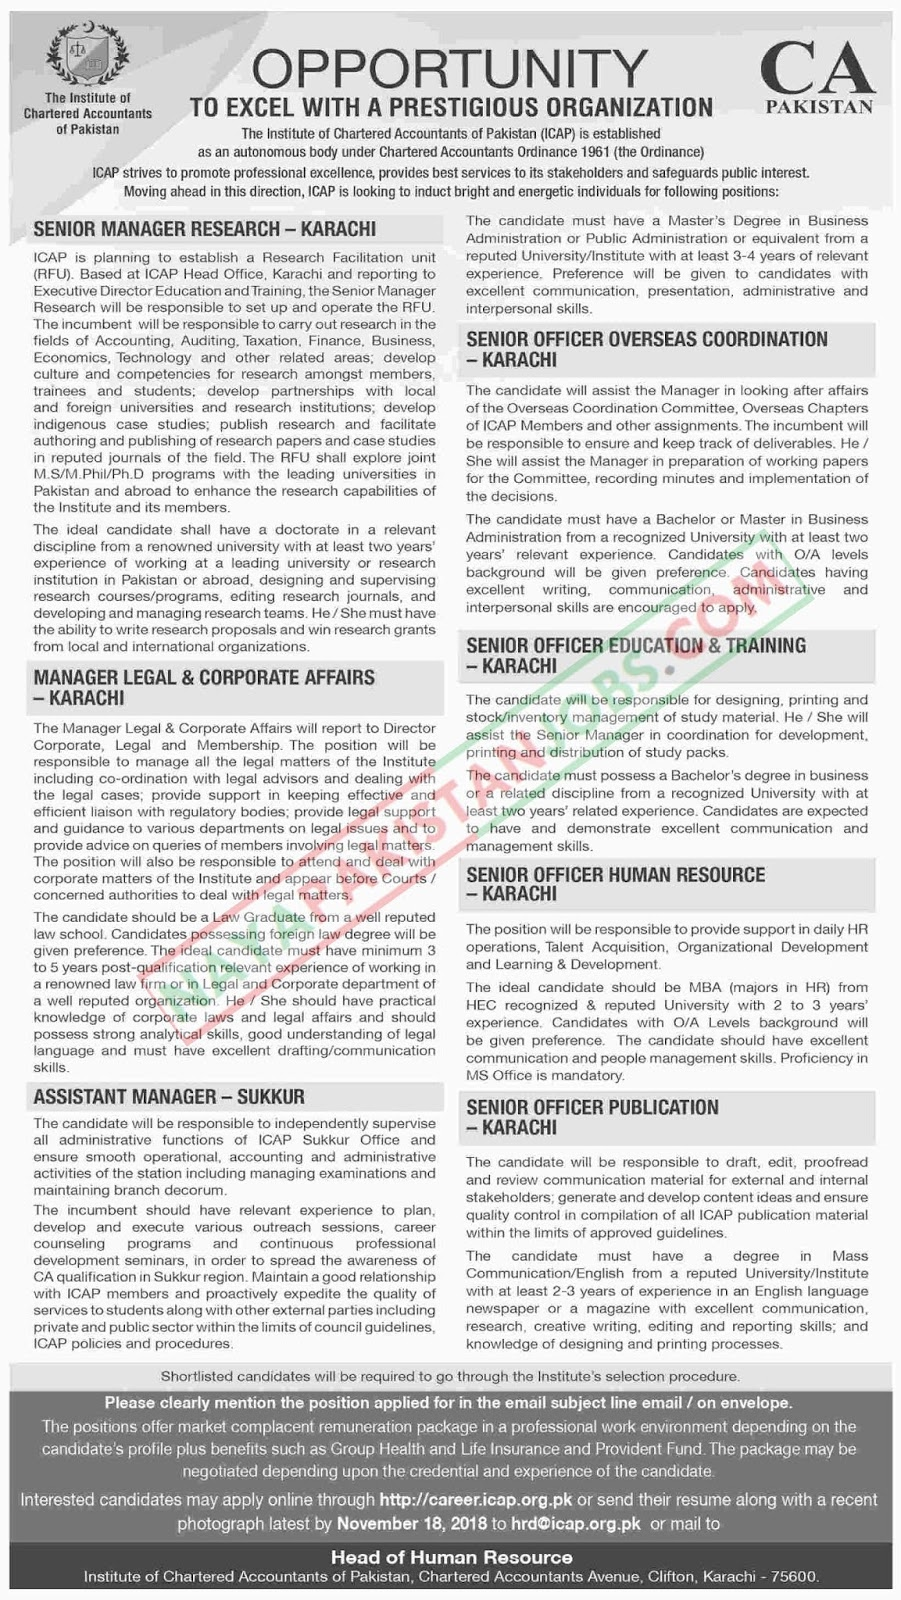 Latest Vacancies Announced in The Institute Of Chartered Accountants Of Pakistan 5 November 2018 - Naya Pakistan